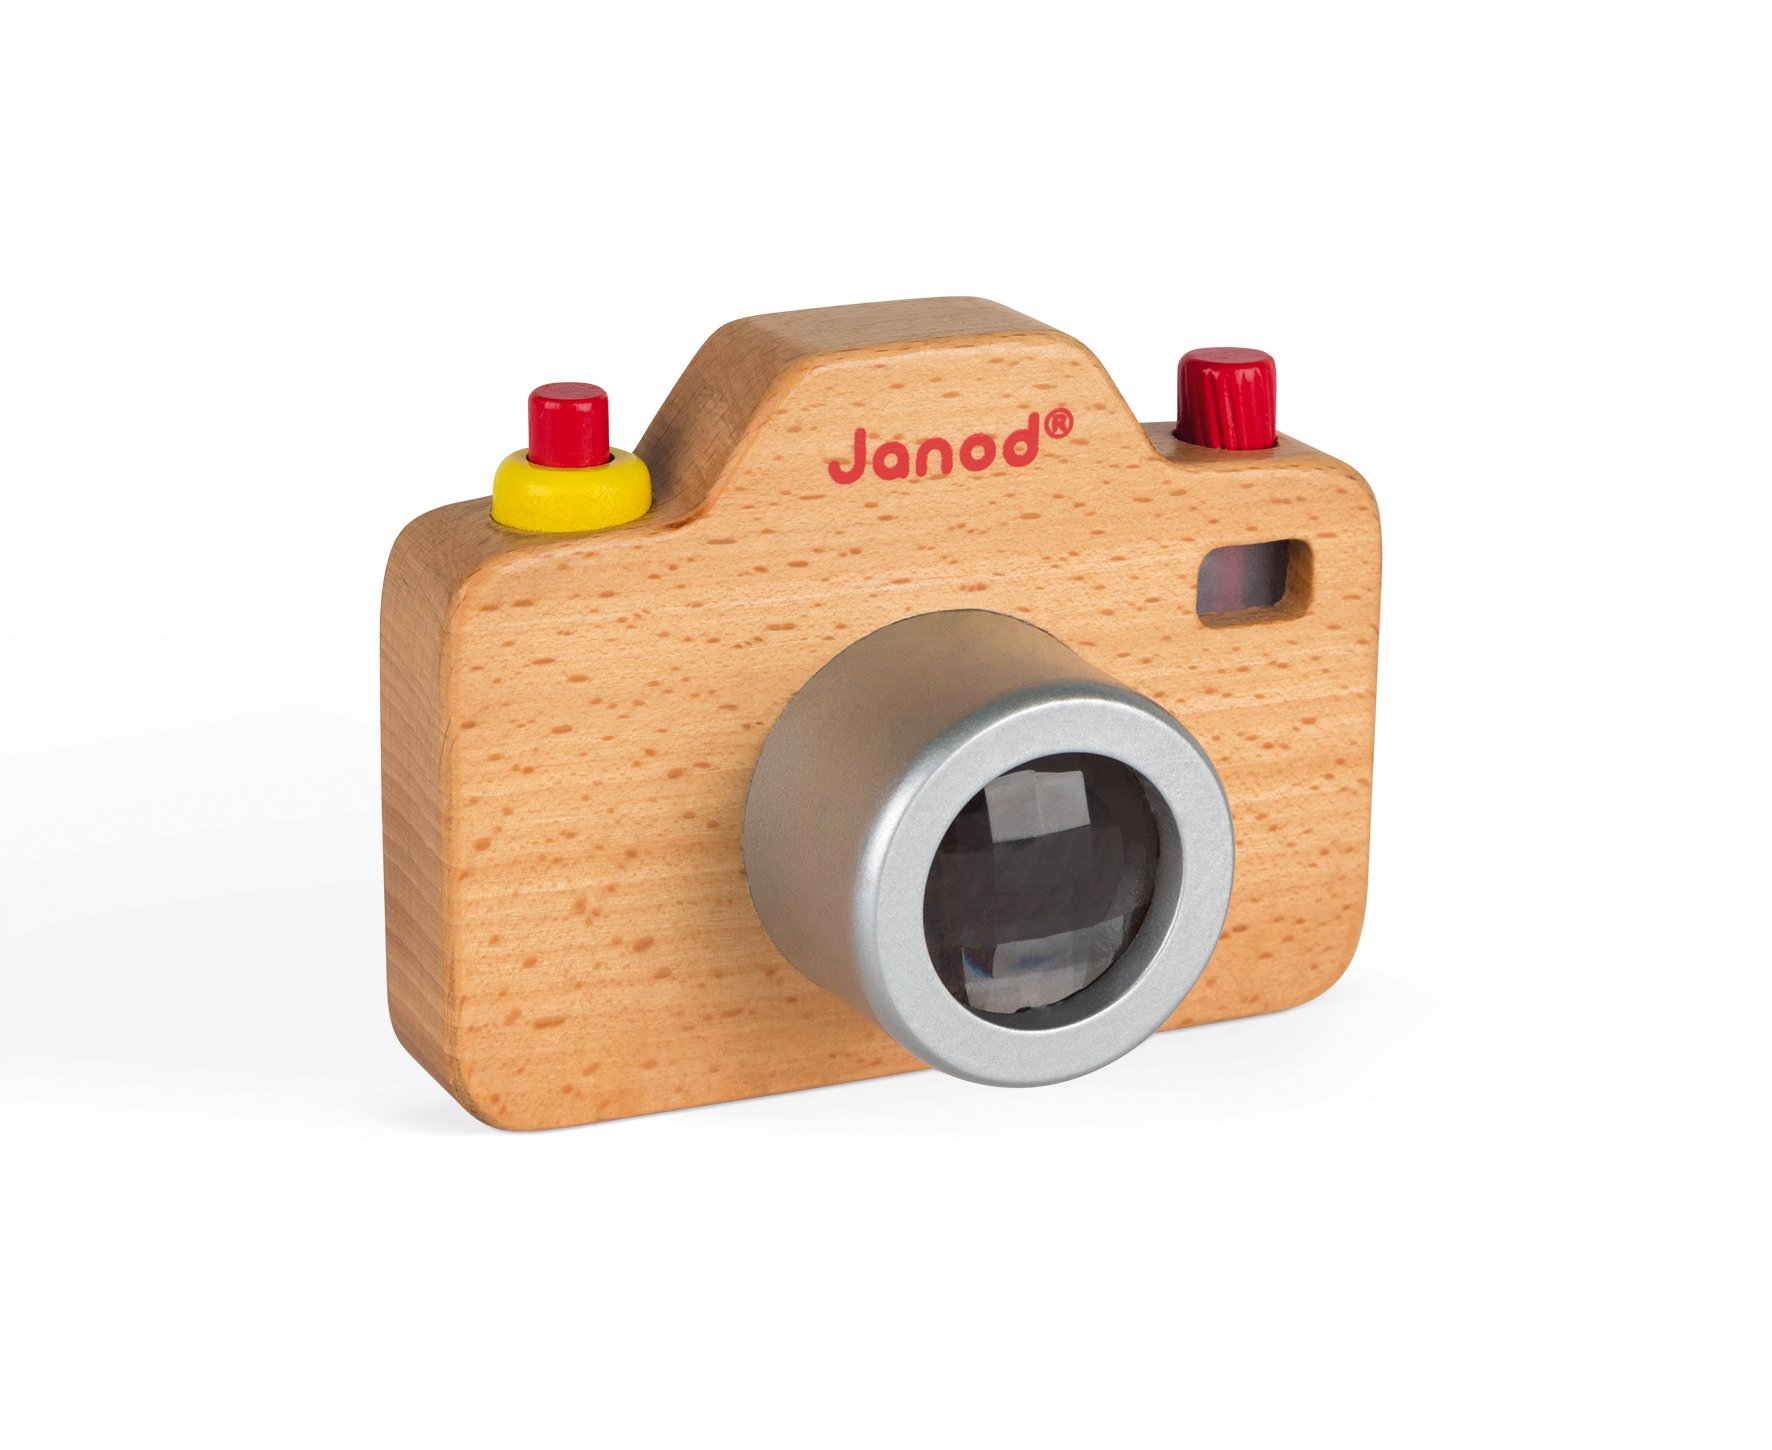 Janod Wooden Interactive Sound Camera Toy by Janod (Image #9)